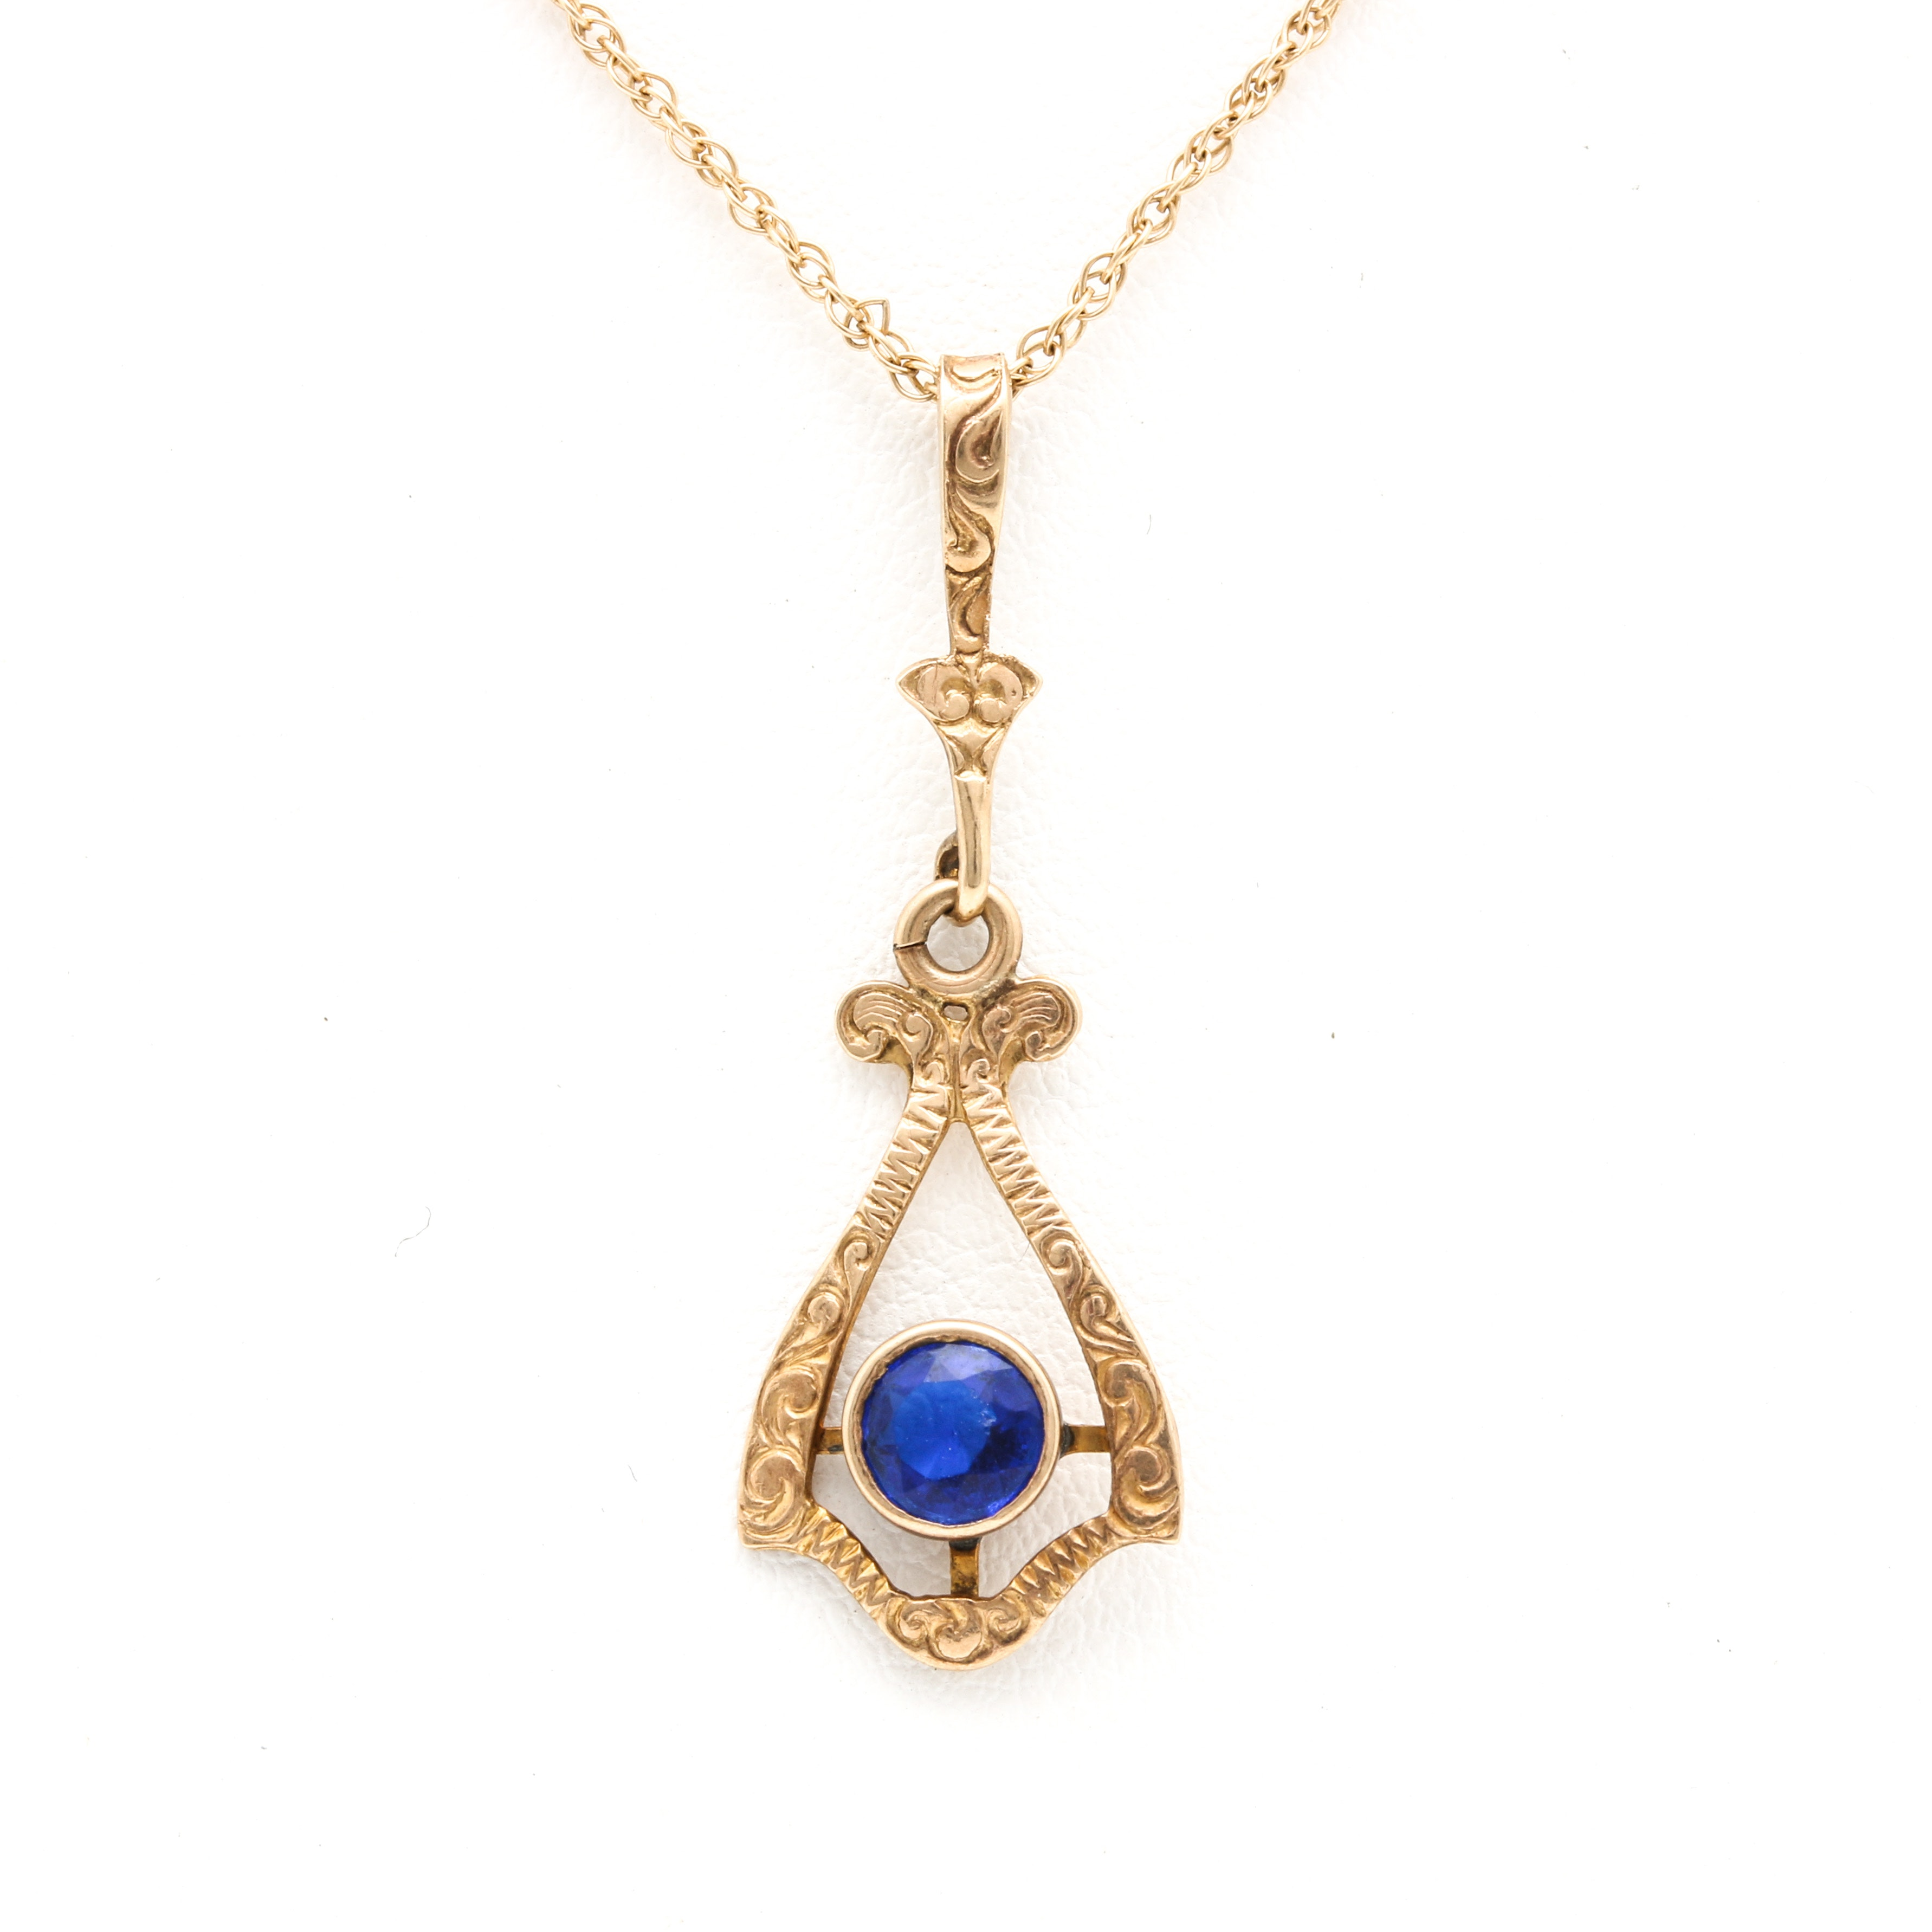 10K Yellow Gold Blue Glass Pendant With 14K Yellow Gold Chain Necklace